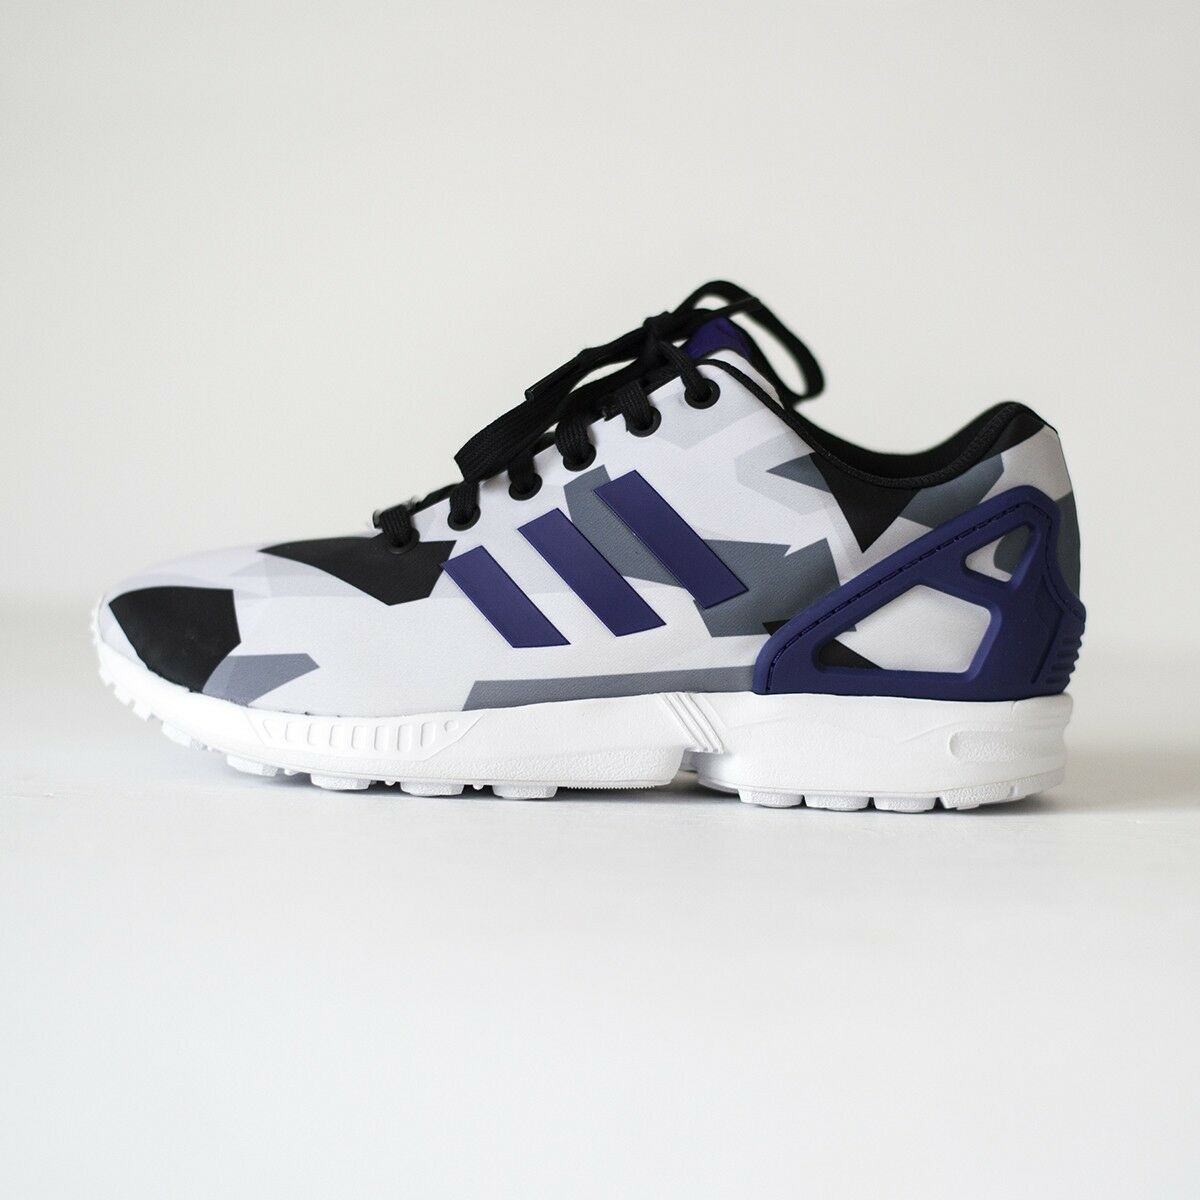 0908bae0bf4e9 Adidas homme Carbon Freak x Carbon homme Hight Top Lace Up Baseball  chaussures 3f2a51